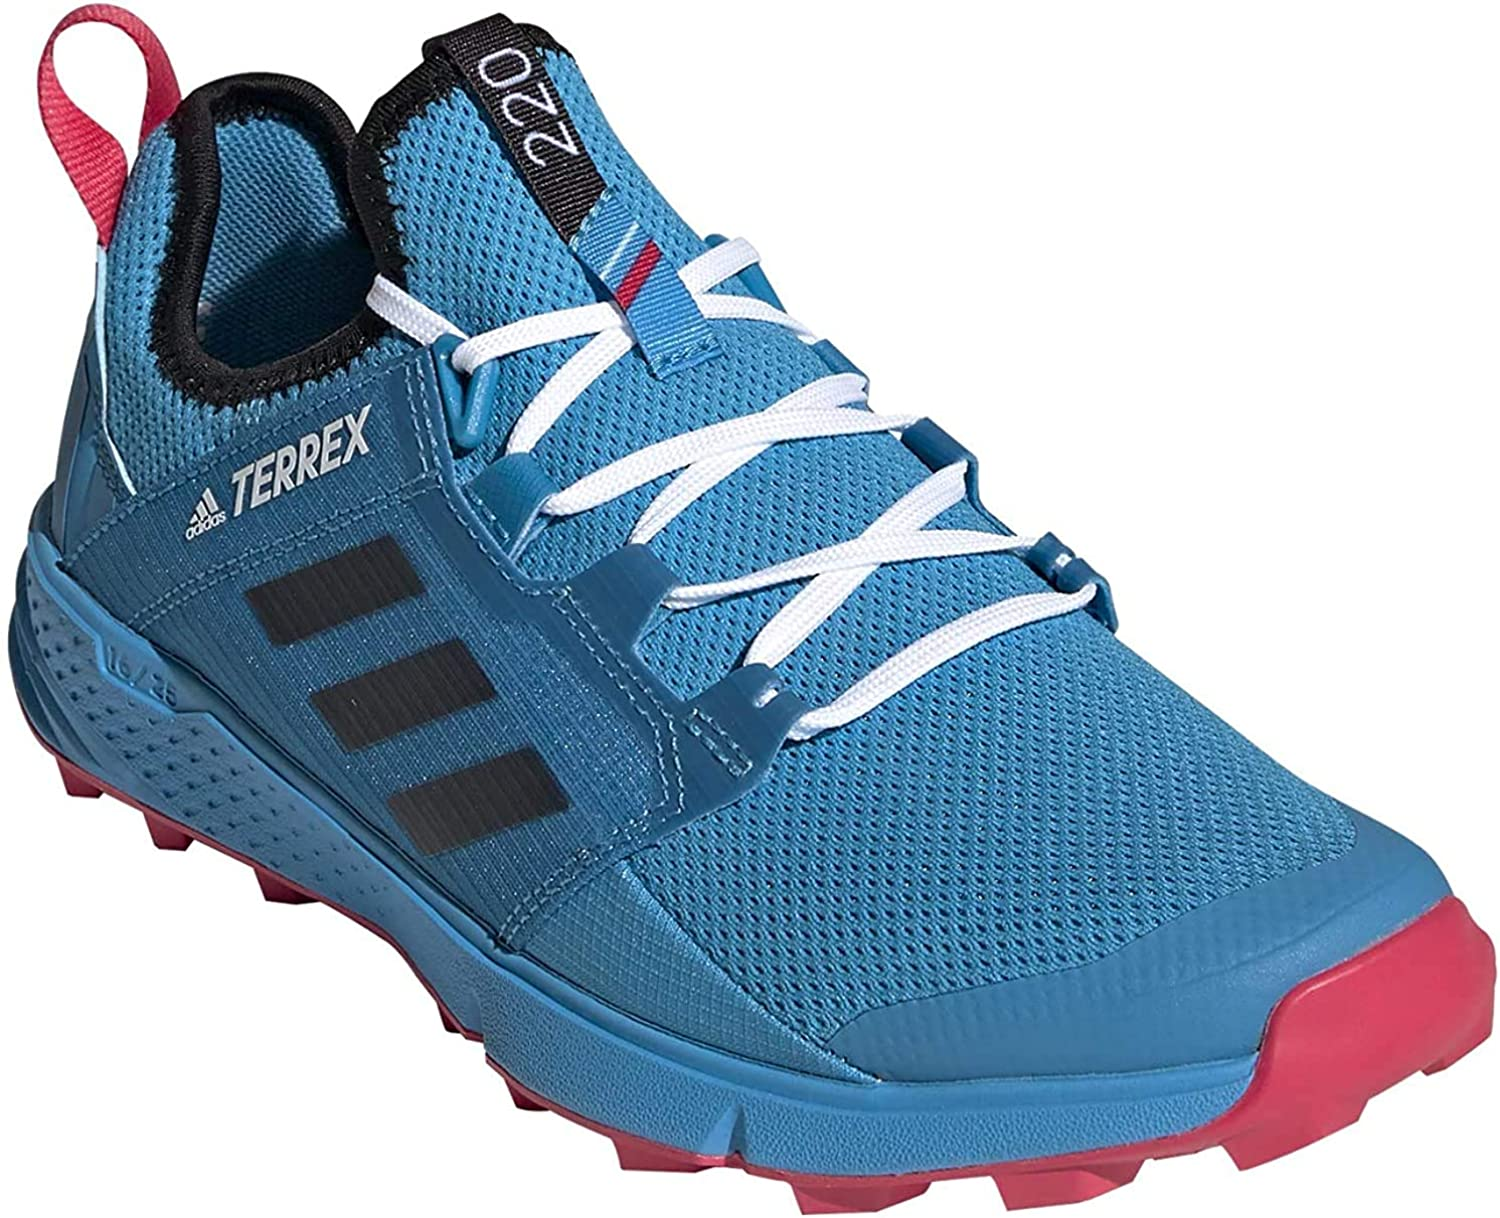 Interpersonal Inquieto Economía  adidas Terrex Agravic Speed LD Women's Trail Running Shoes - SS19:  Amazon.co.uk: Shoes & Bags